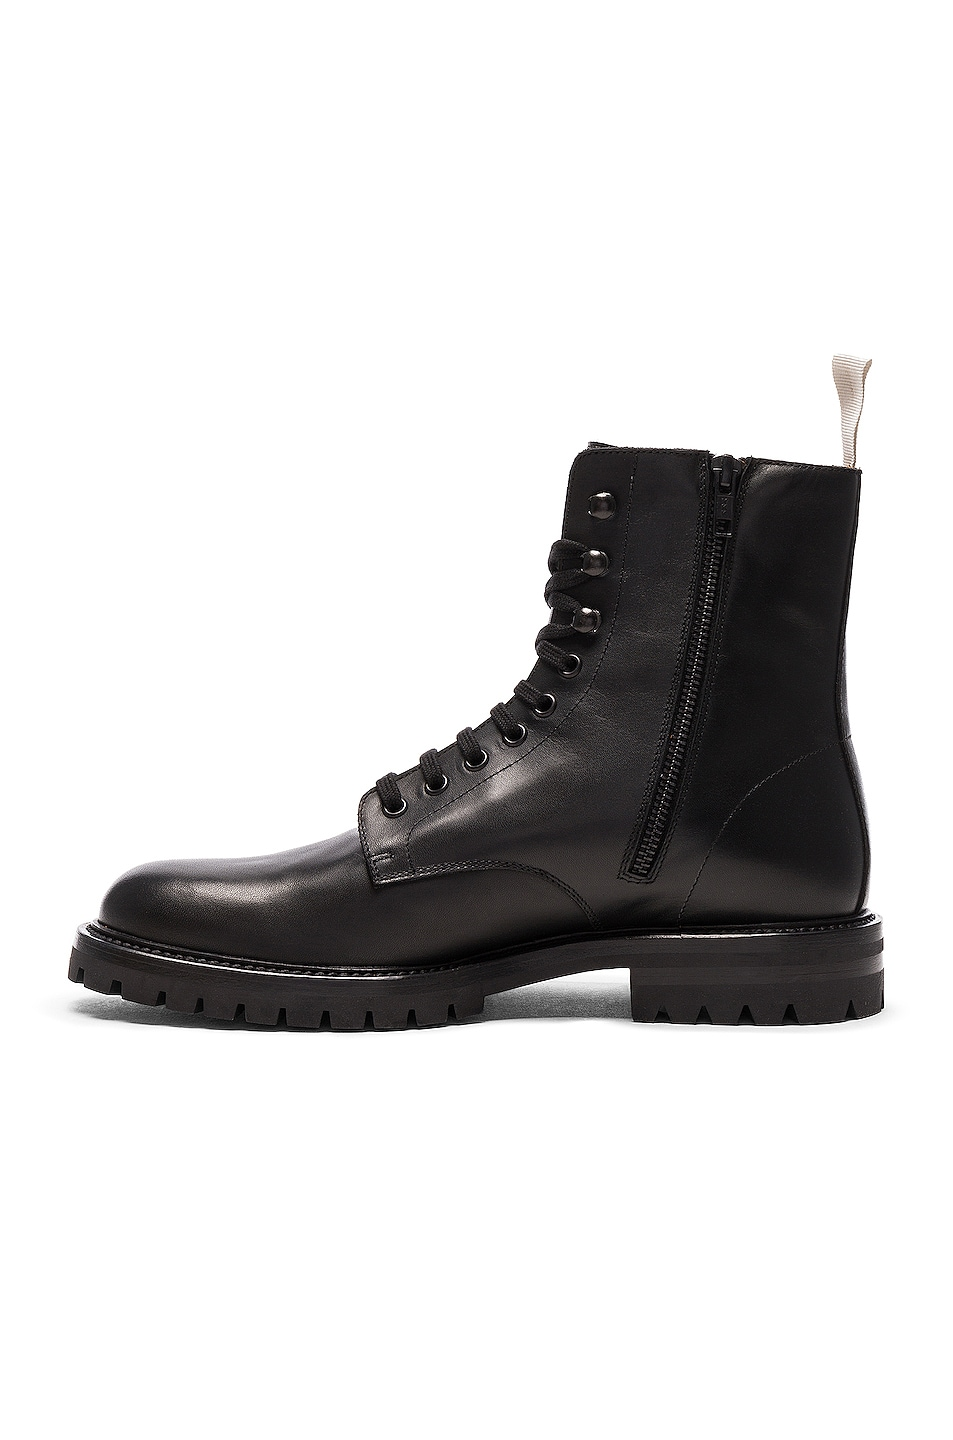 ecf4dac021599 Image 5 of Common Projects Leather Winter Combat Boots in Black